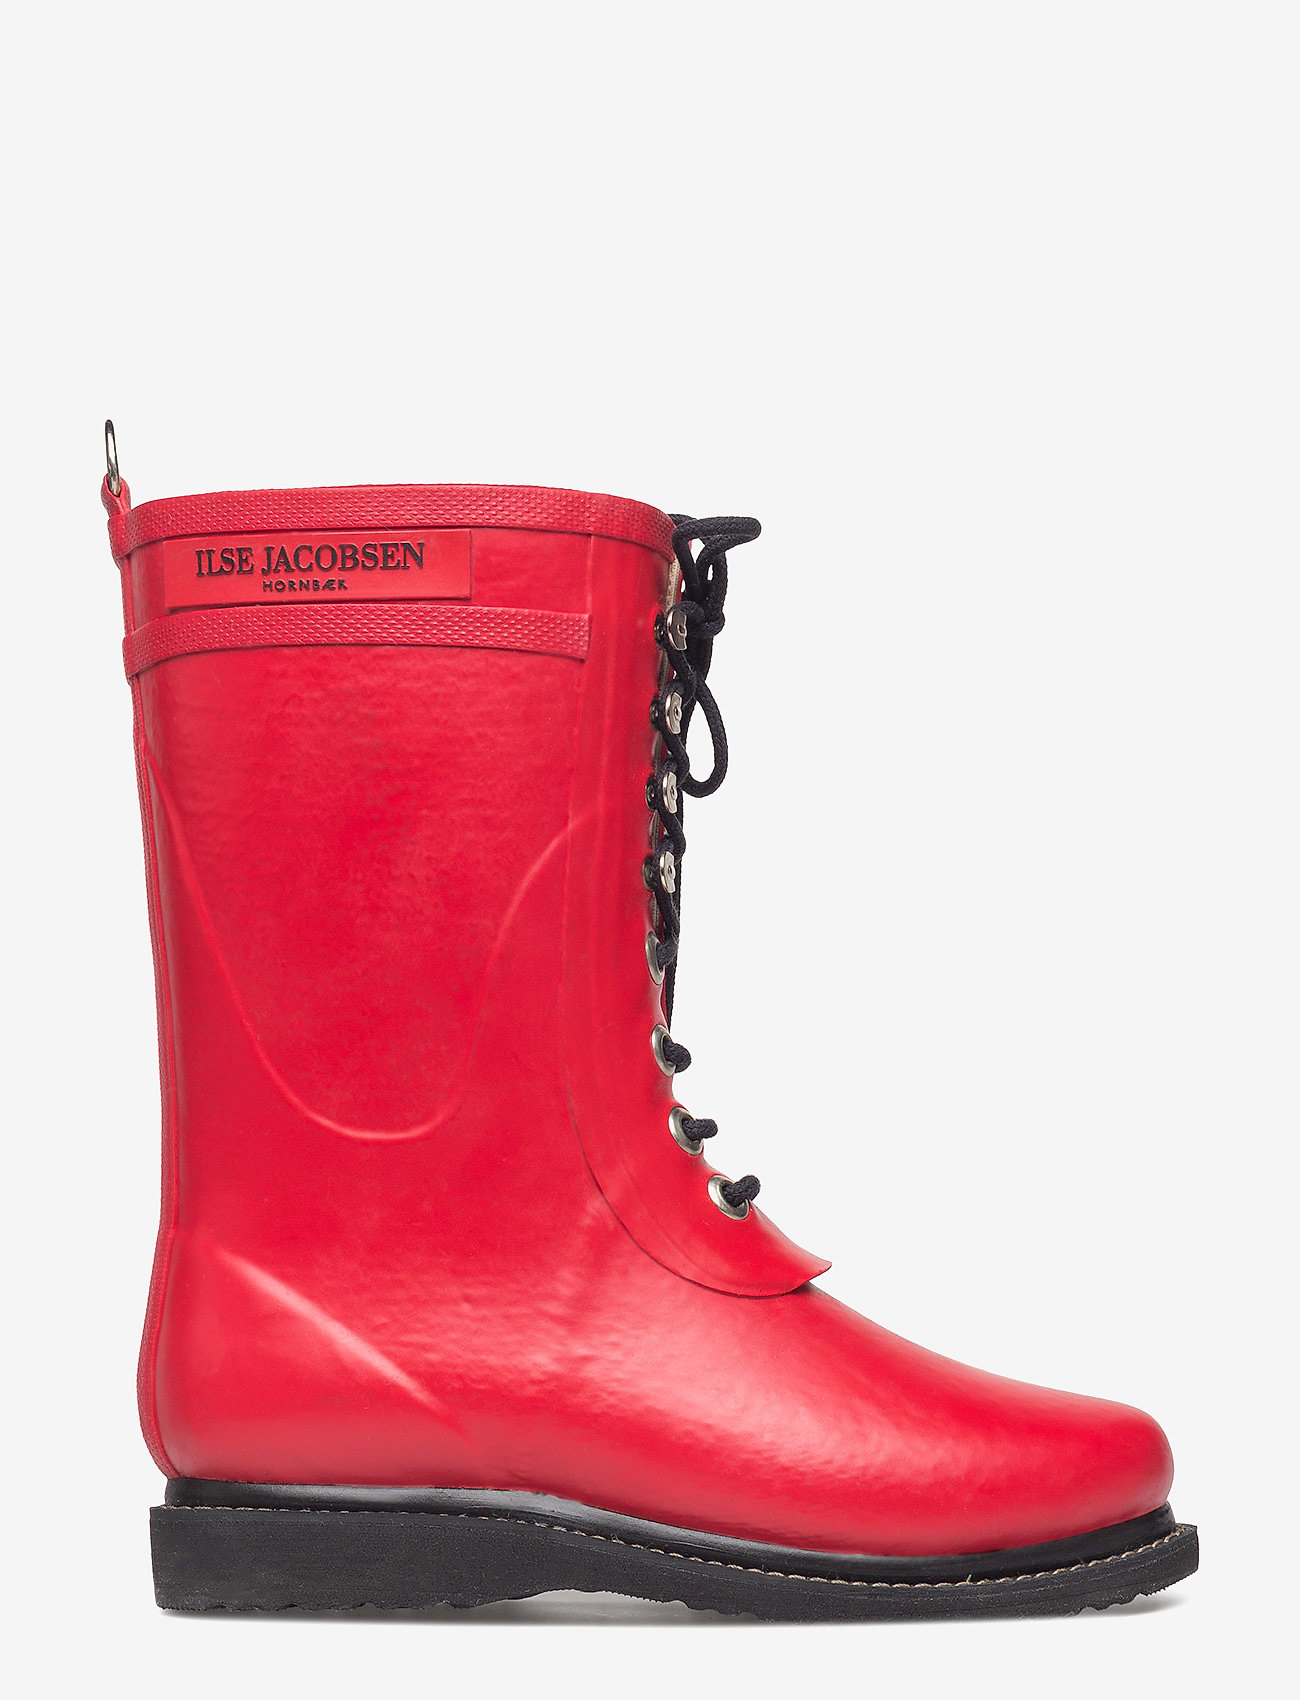 34 RUBBERBOOT